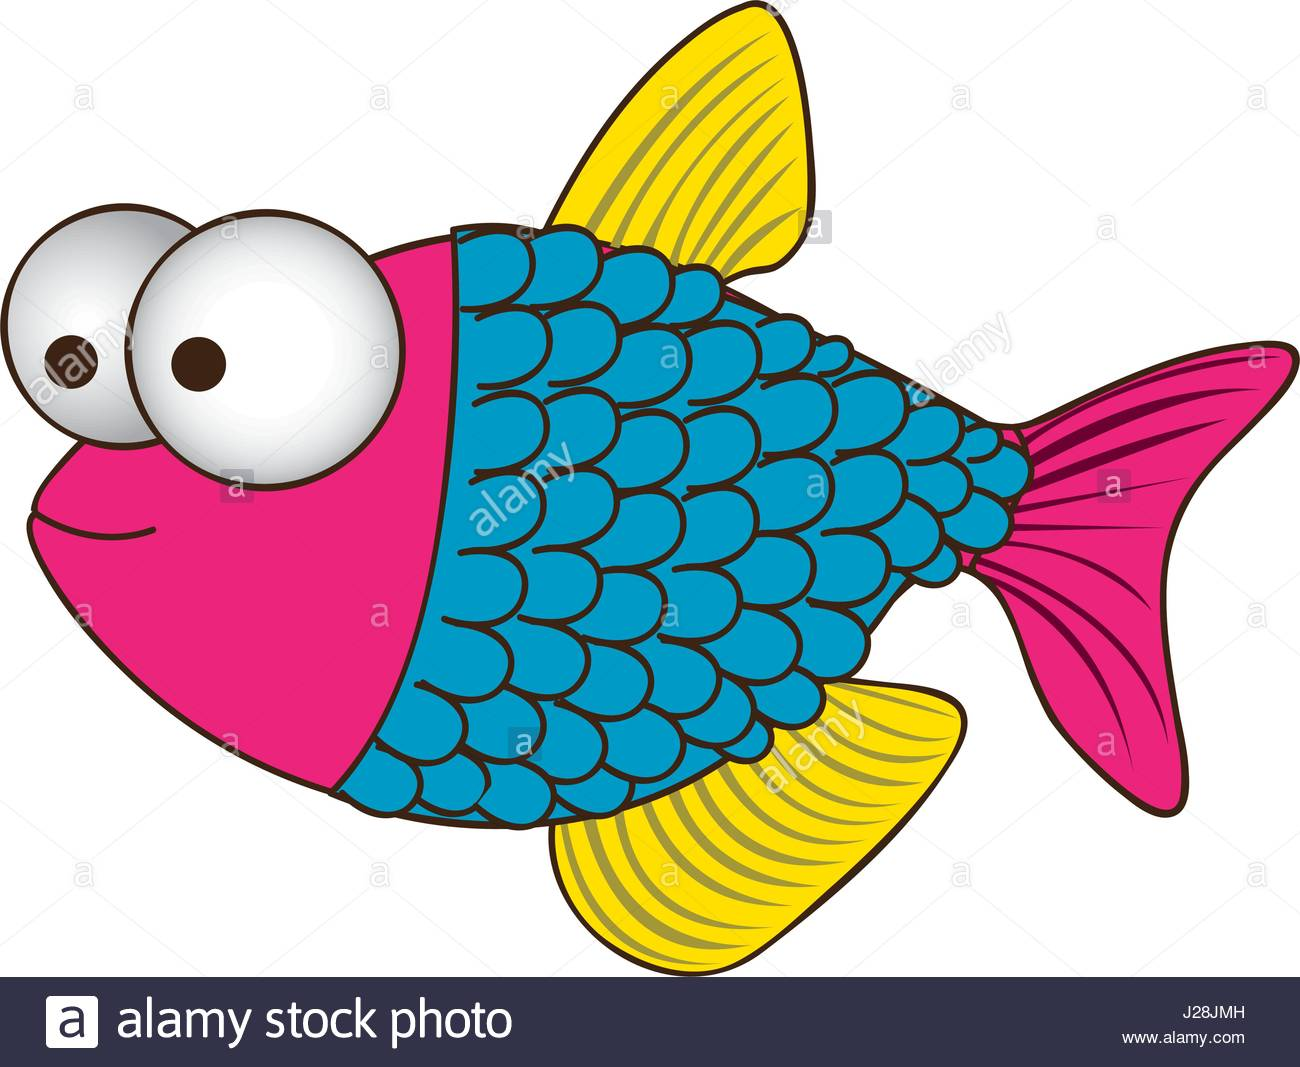 1300x1067 Color Silhouette Of Fish With Big Eyes And Scales Stock Vector Art